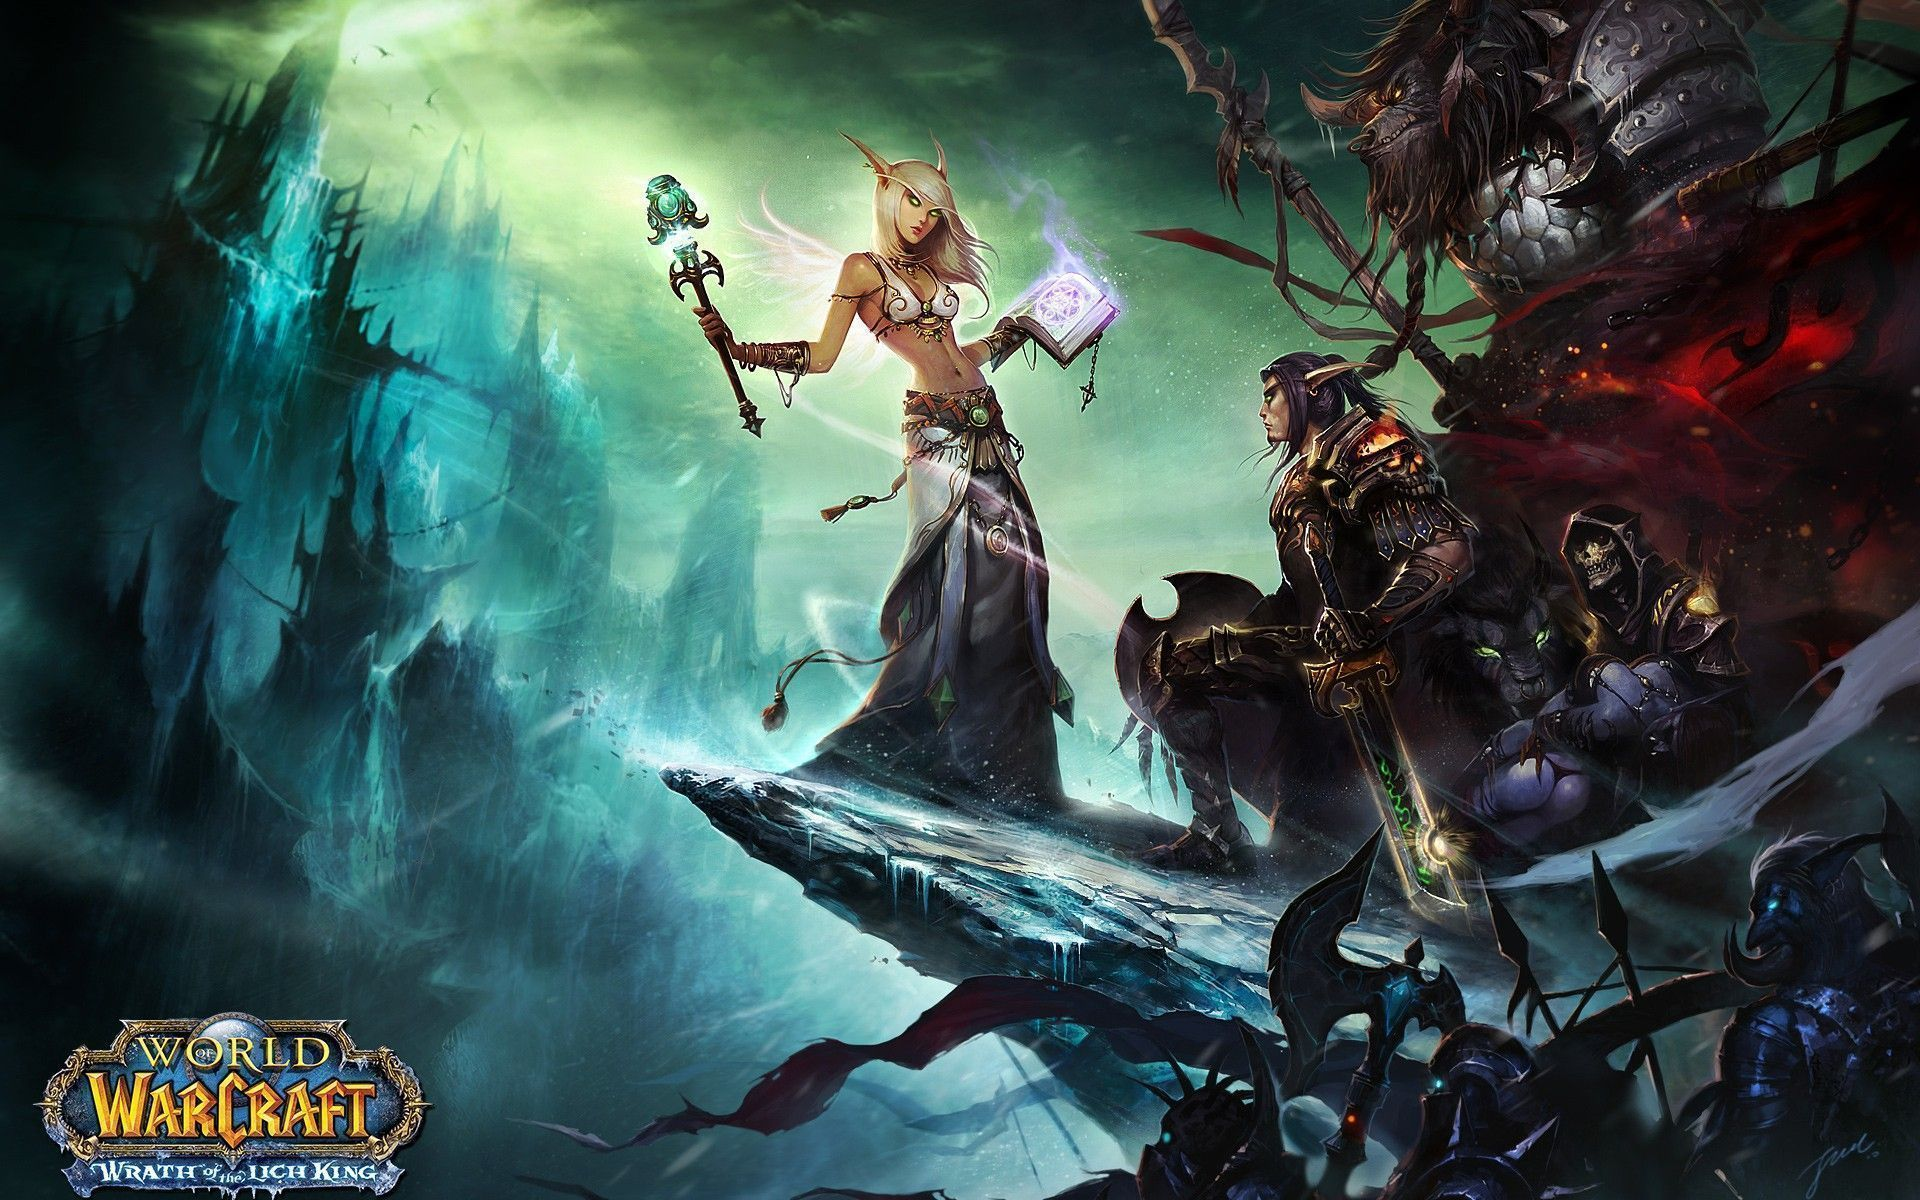 World of Warcraft Wallpaper Backgrounds High Definition Wallpapers